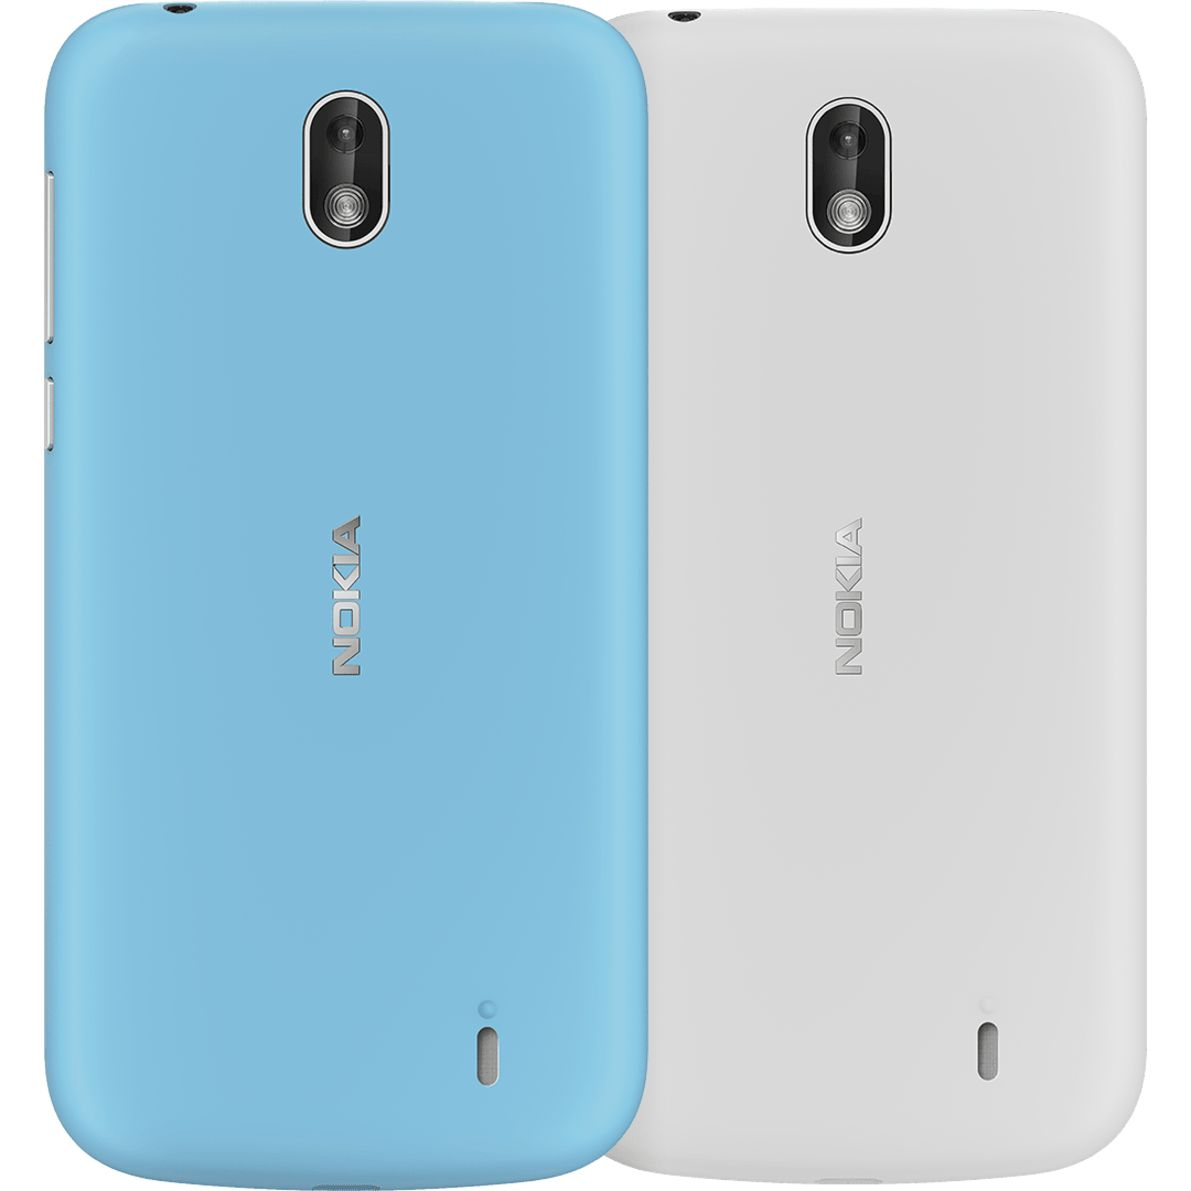 finest selection dce0e 97291 Nokia Xpress-on cover Dual Pack | Nokia phones